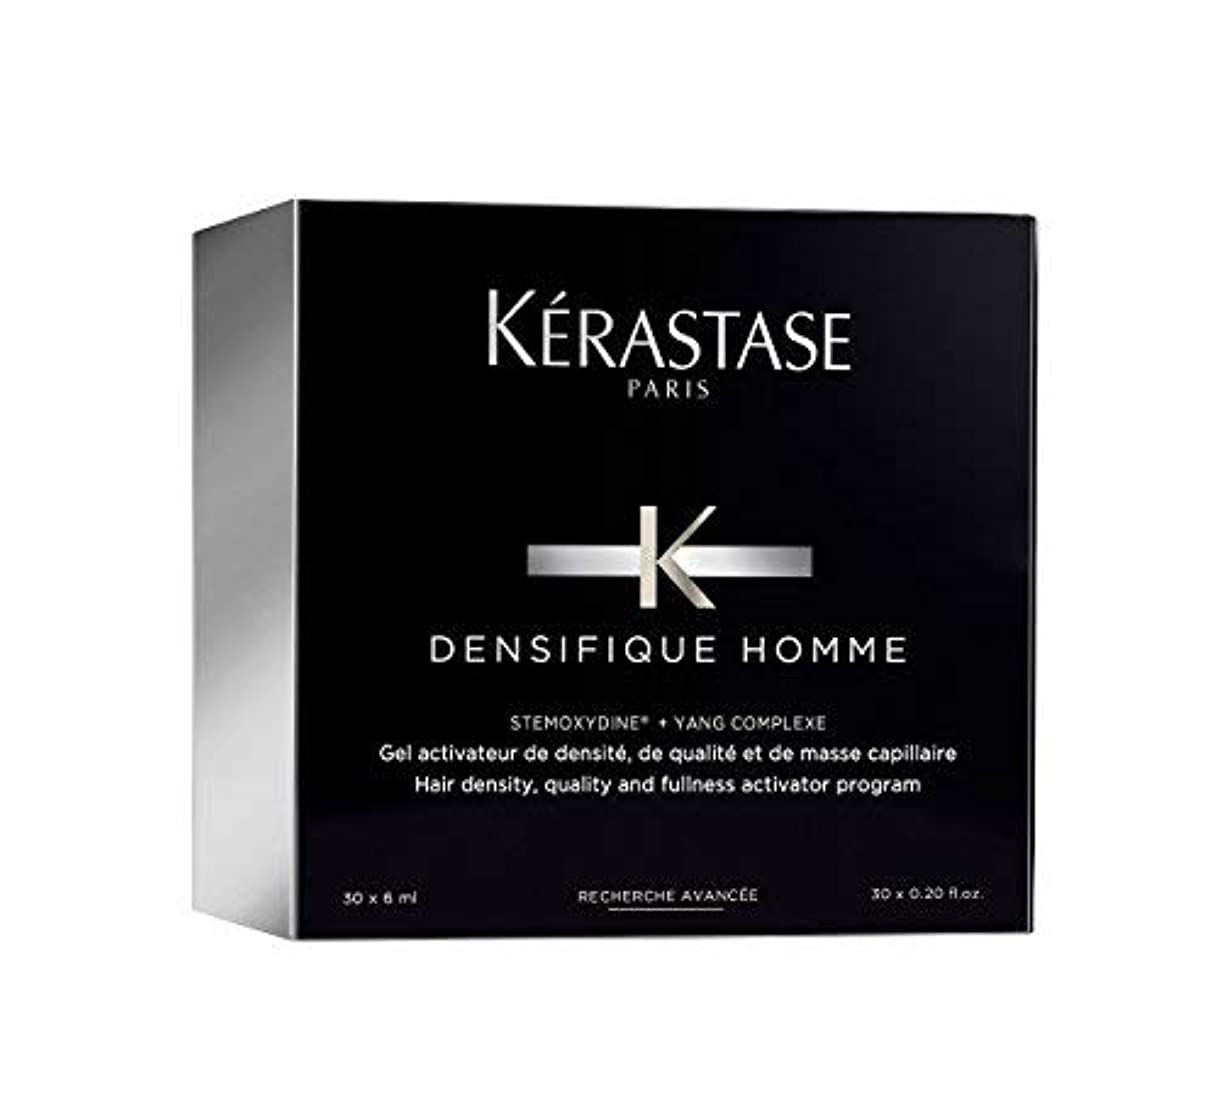 きらめく到着するアリーナケラスターゼ Densifique Homme Hair Density and Fullness Programme 30x6ml